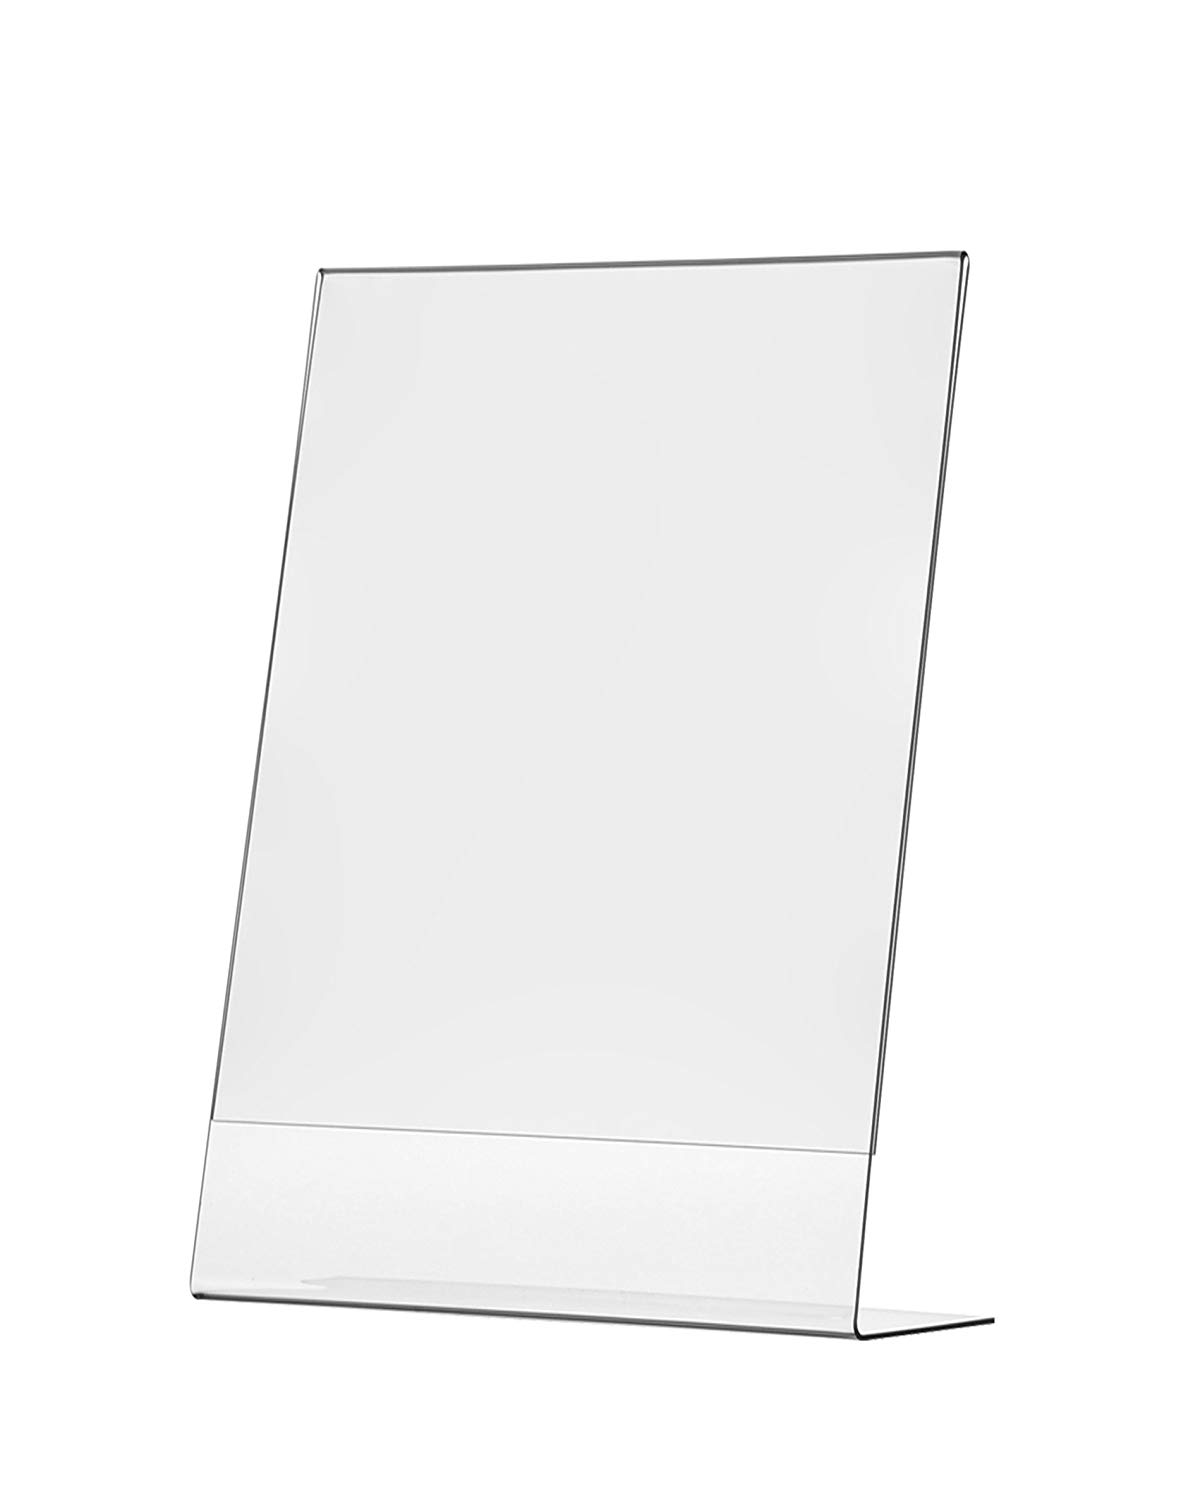 Wall Sign Holder with Tri-Fold Pocket 8.5 x 11 Inch Literature Display Premium